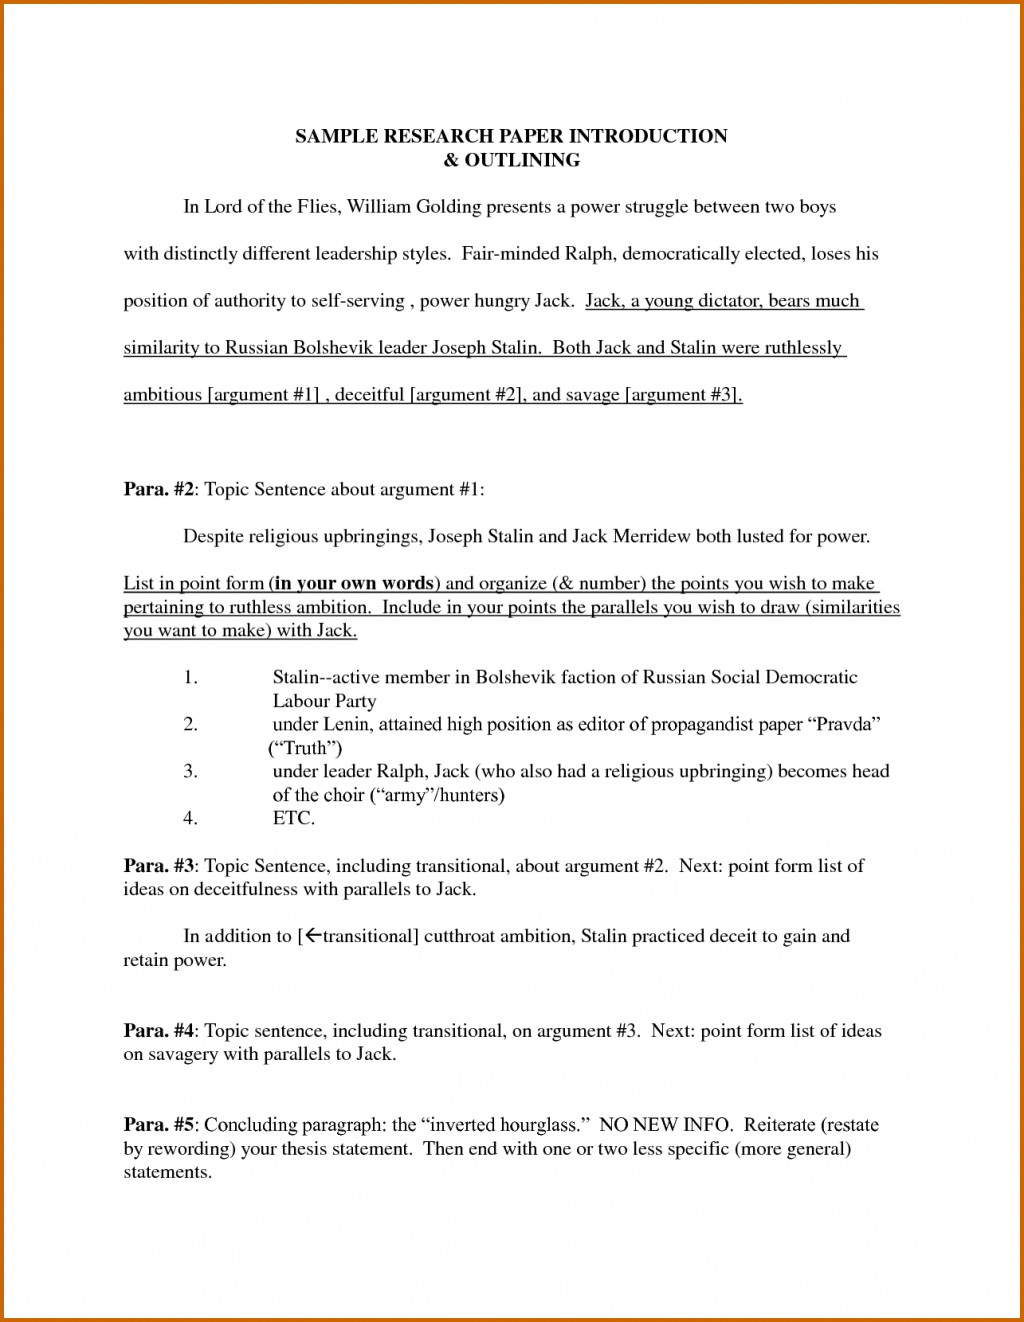 011 Research Paper Introduction For Term Sample How To Write Good Awful A Paragraph Large